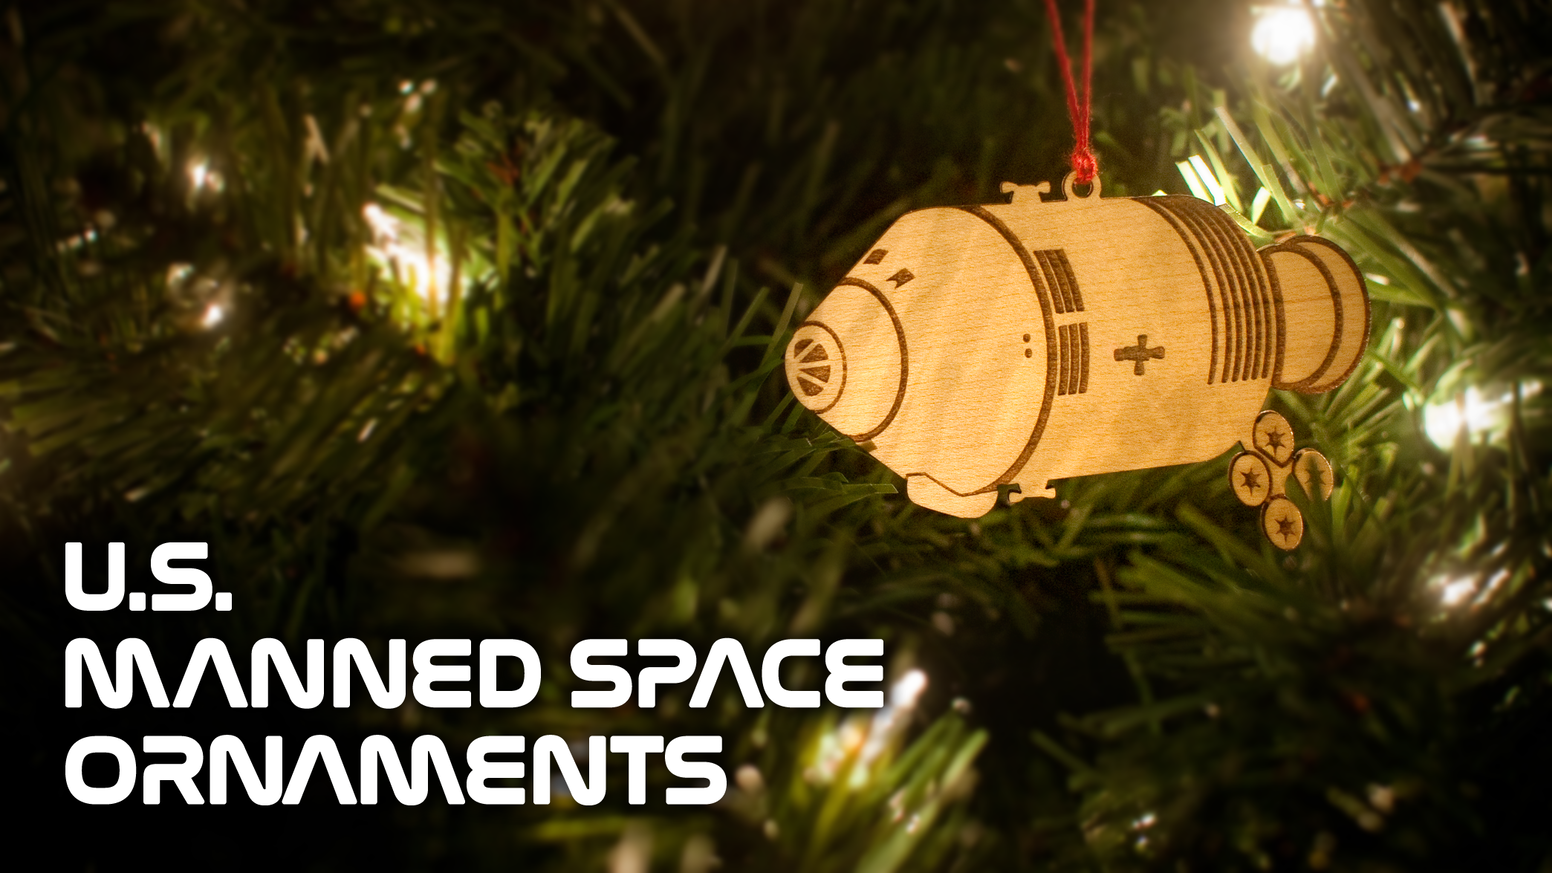 Celebrate the history of the United States manned space program with this collection of four Christmas ornaments.